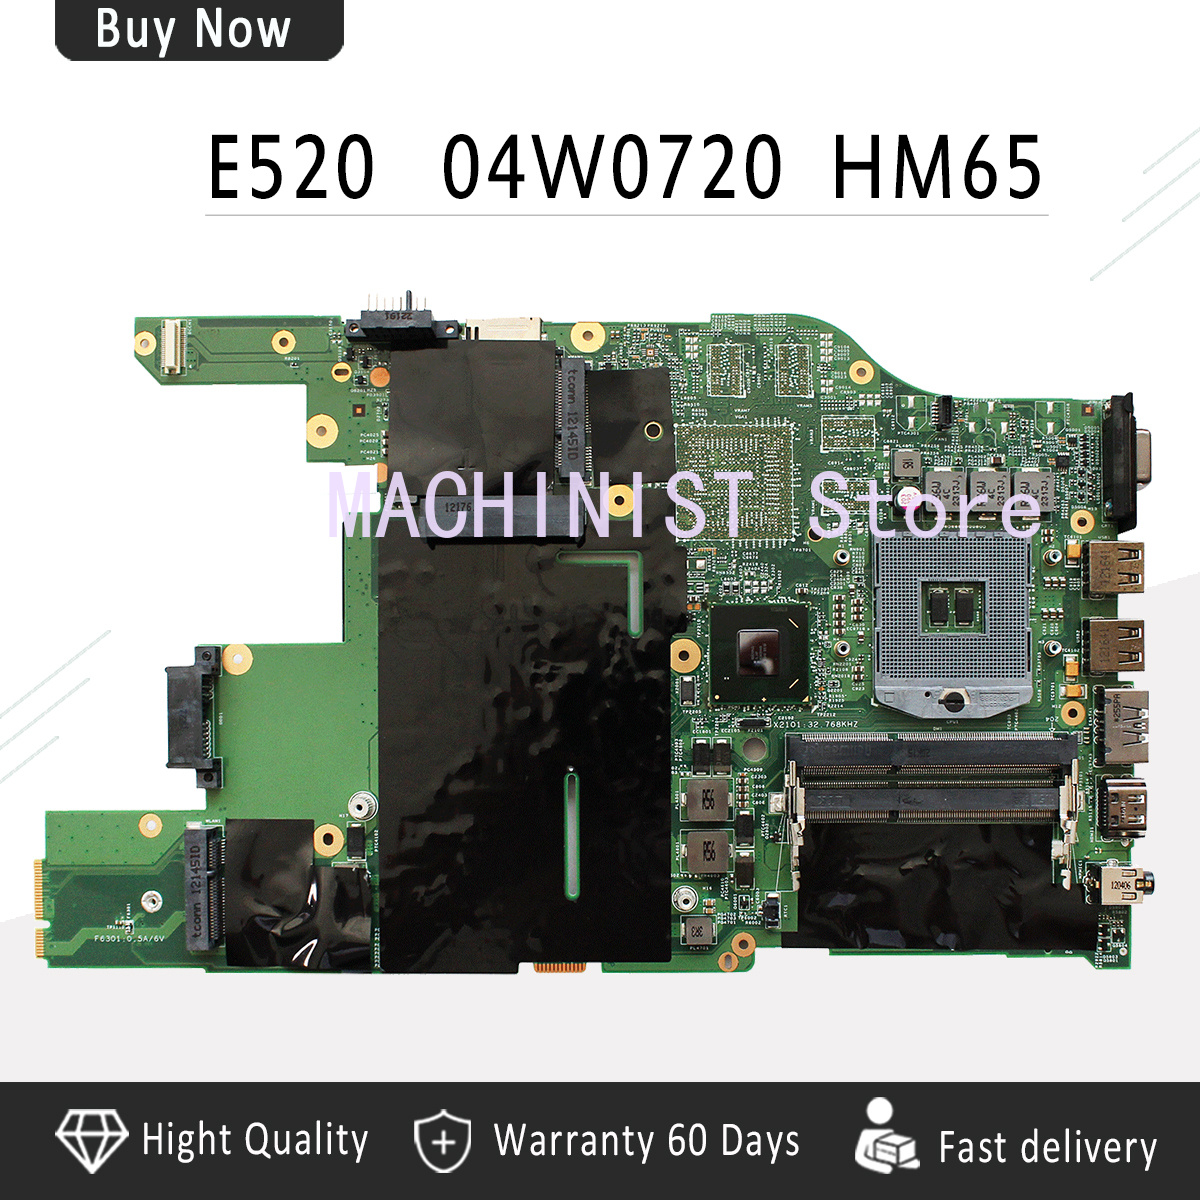 E520 motherboard For Lenovo ThinkPad IBM E520 04W0398 04W0720 laptop notebook motherboard HM65 DDR3 PGA988B